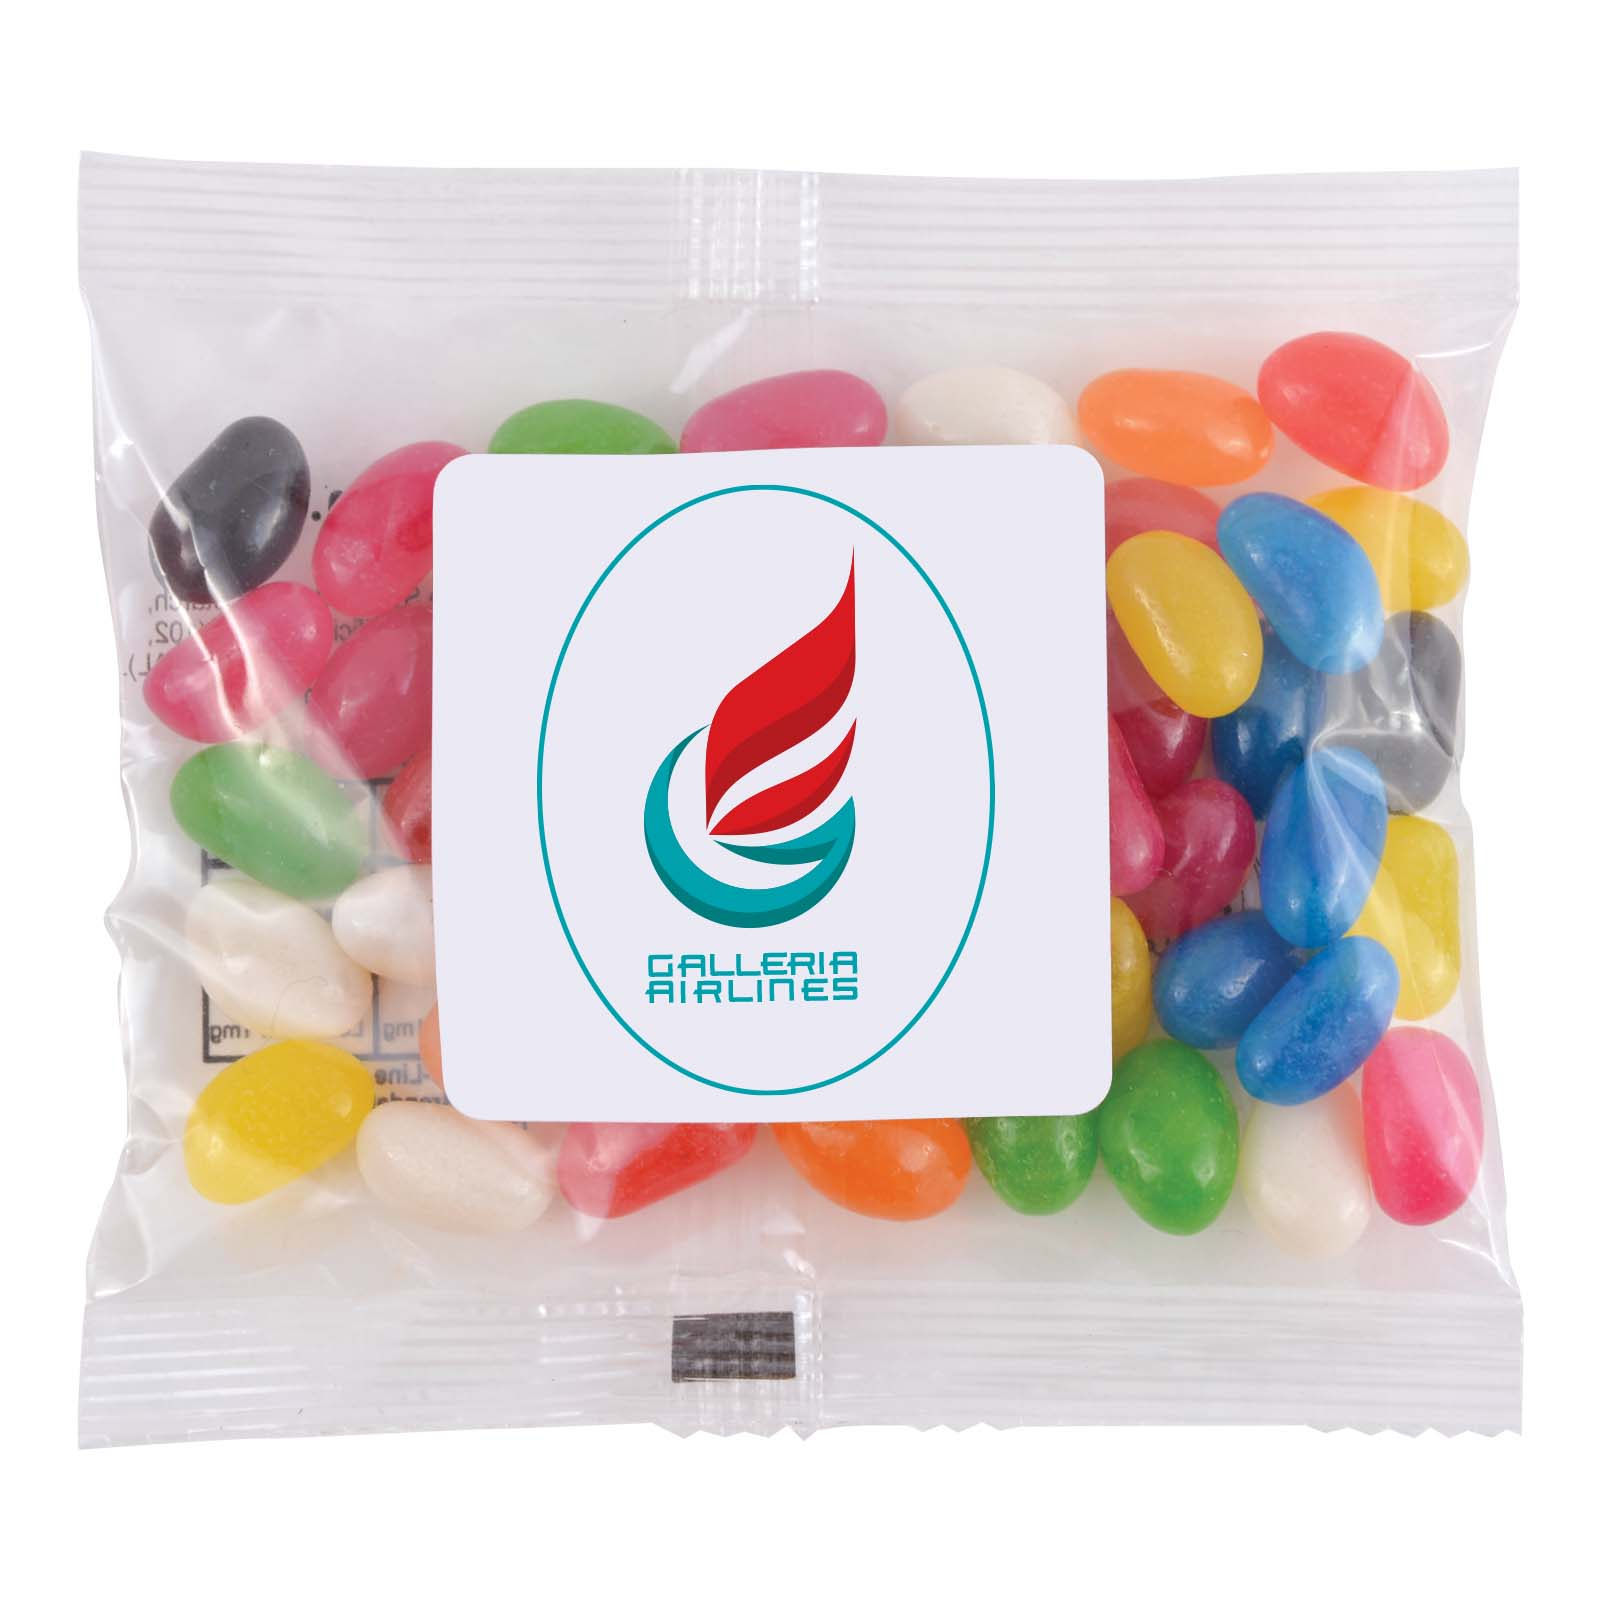 Assorted Colour Mini Jelly Beans in 60 Gram Cello Bag - Includes a full colour logo, From $0.84